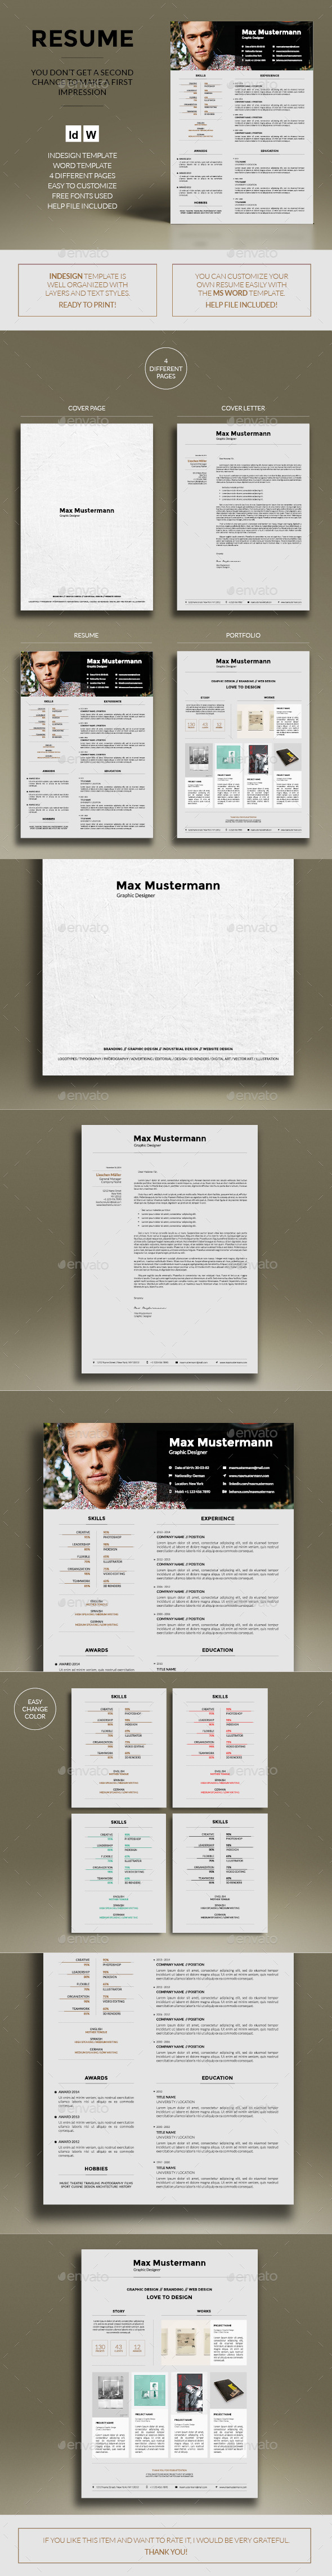 GraphicRiver Resume 9738460